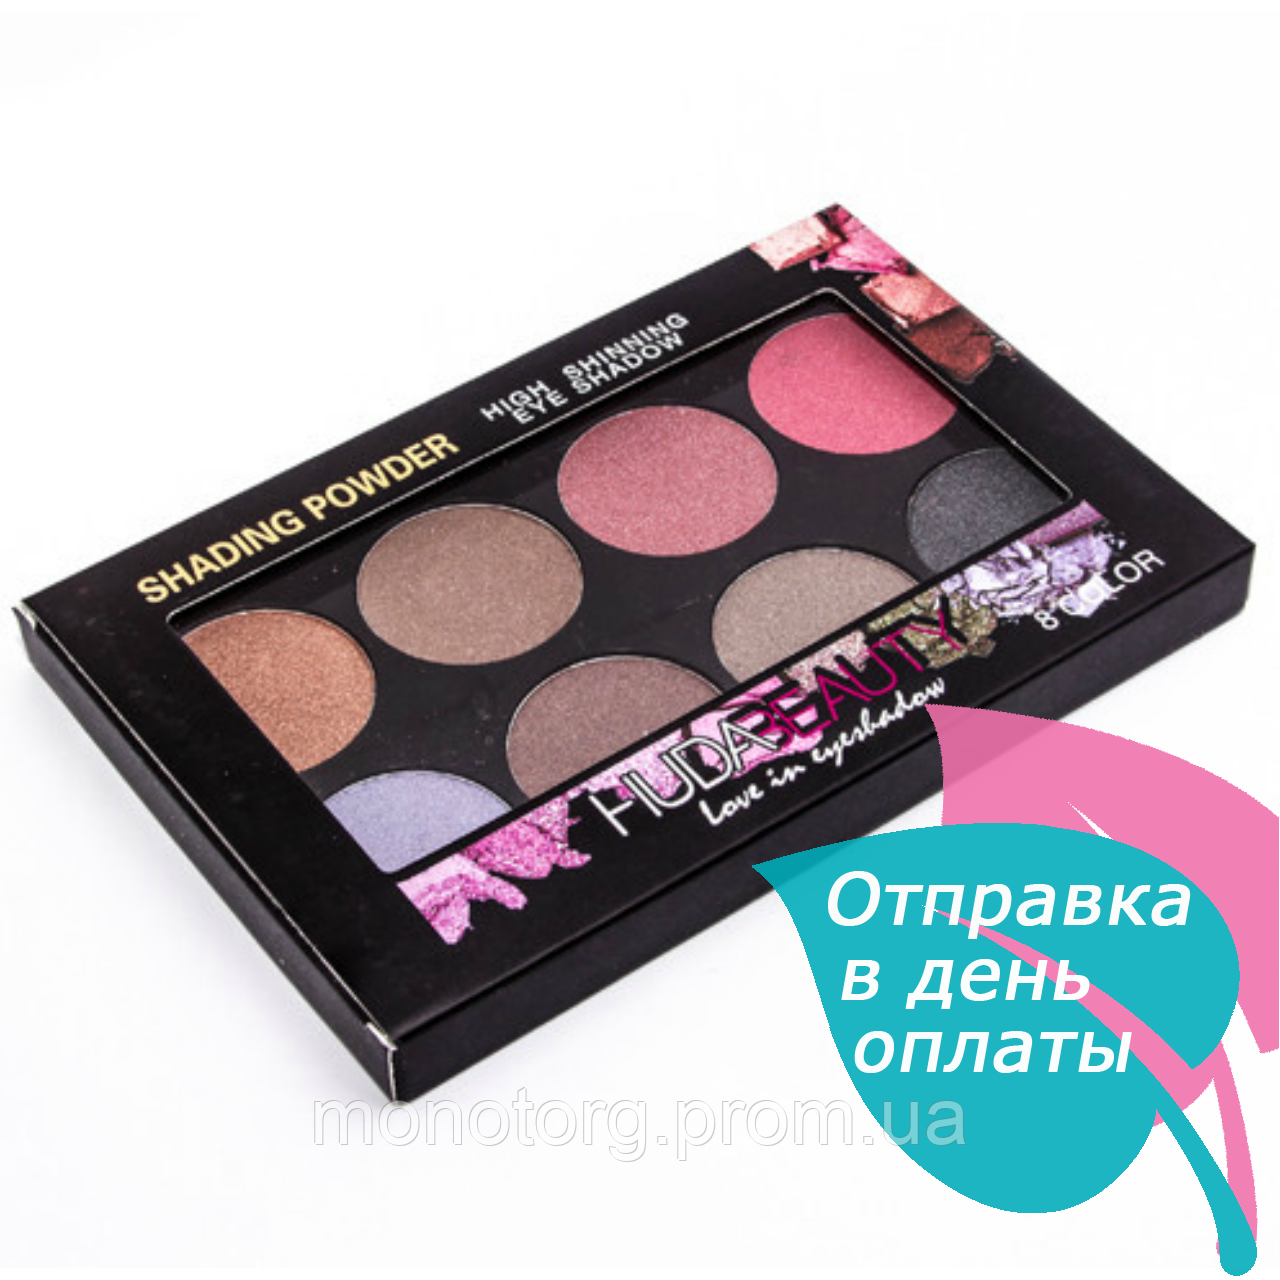 Тени Huda Beauty Love in eyeshadow shading powder №2